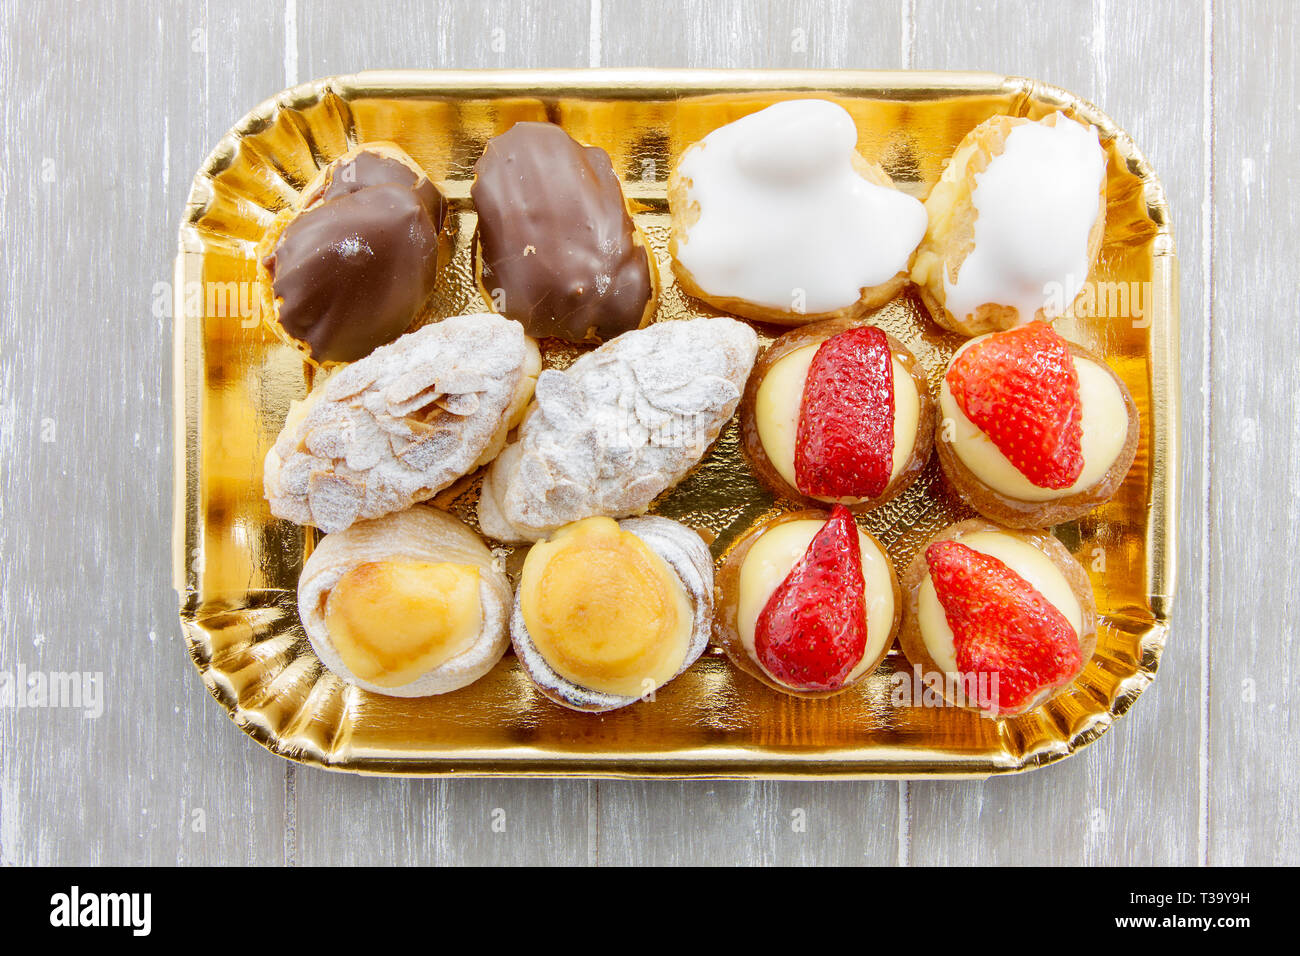 Tray of assorted cakes - Stock Image